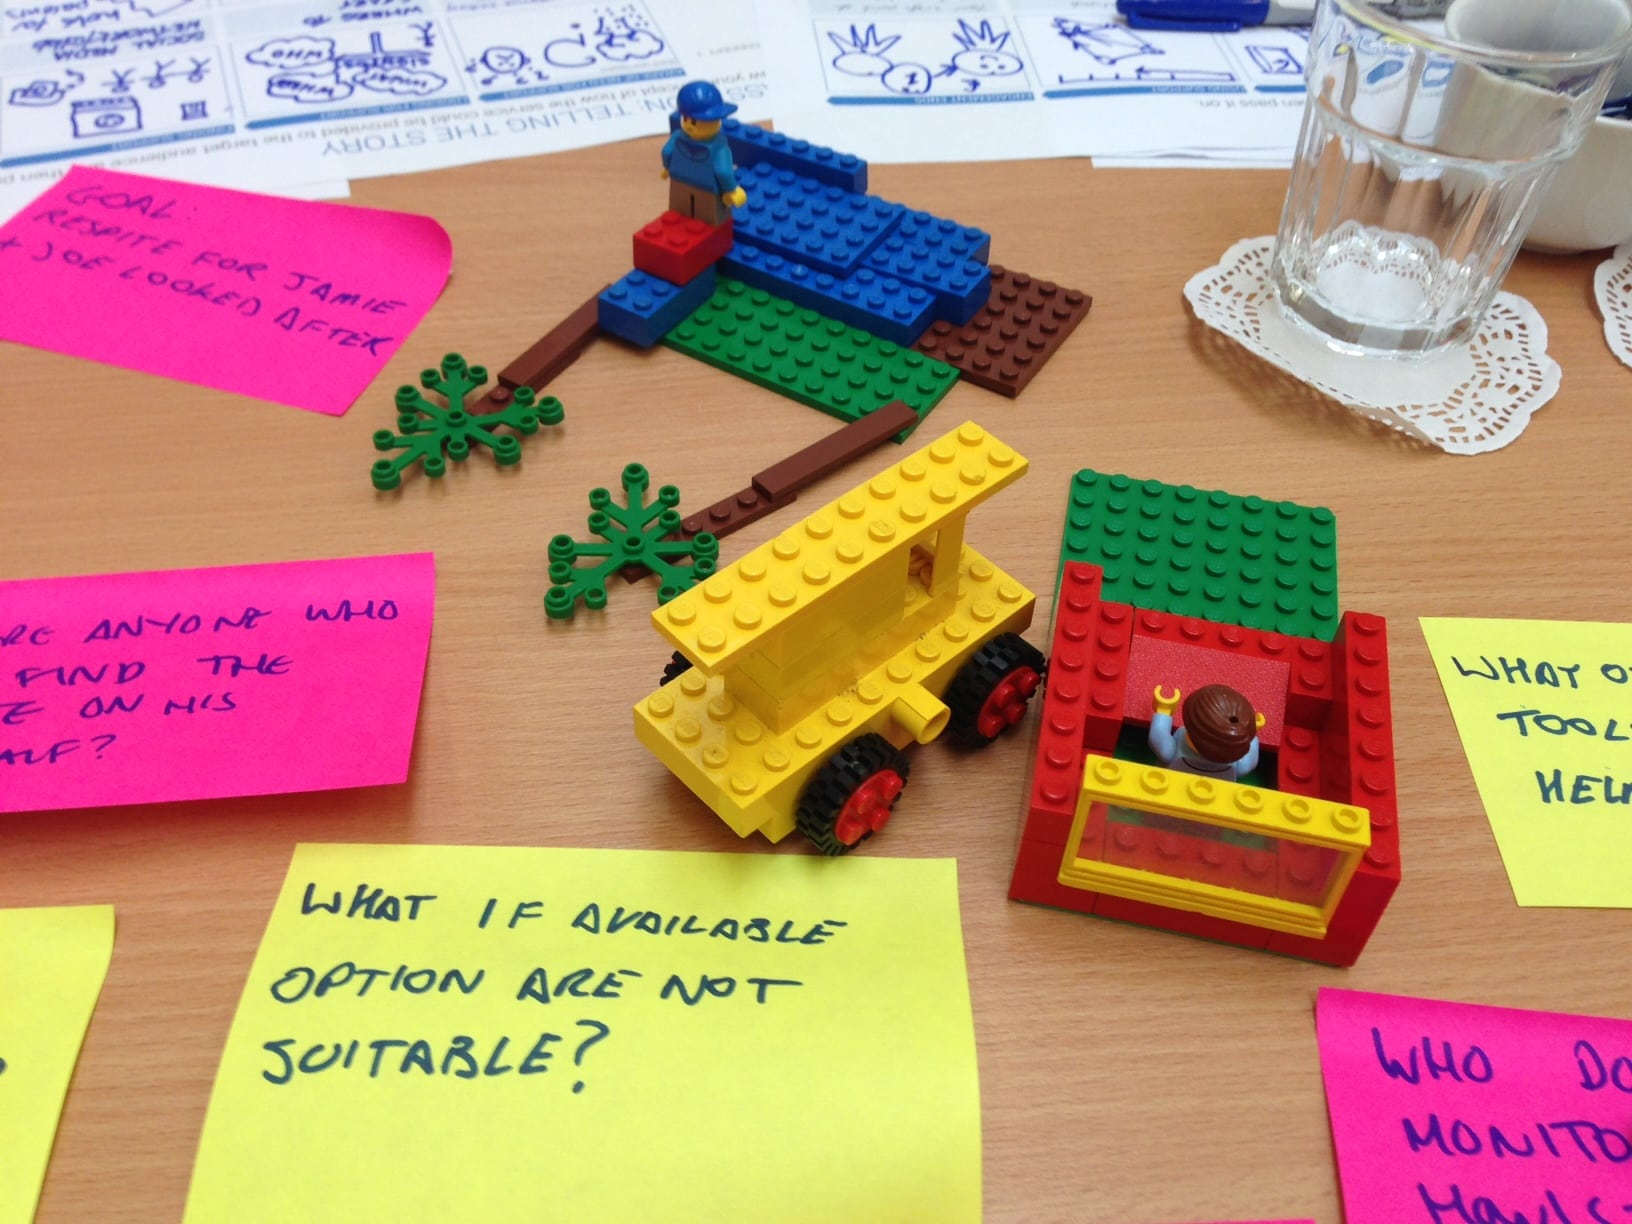 Post-it notes with questions written on them, and lego on a table